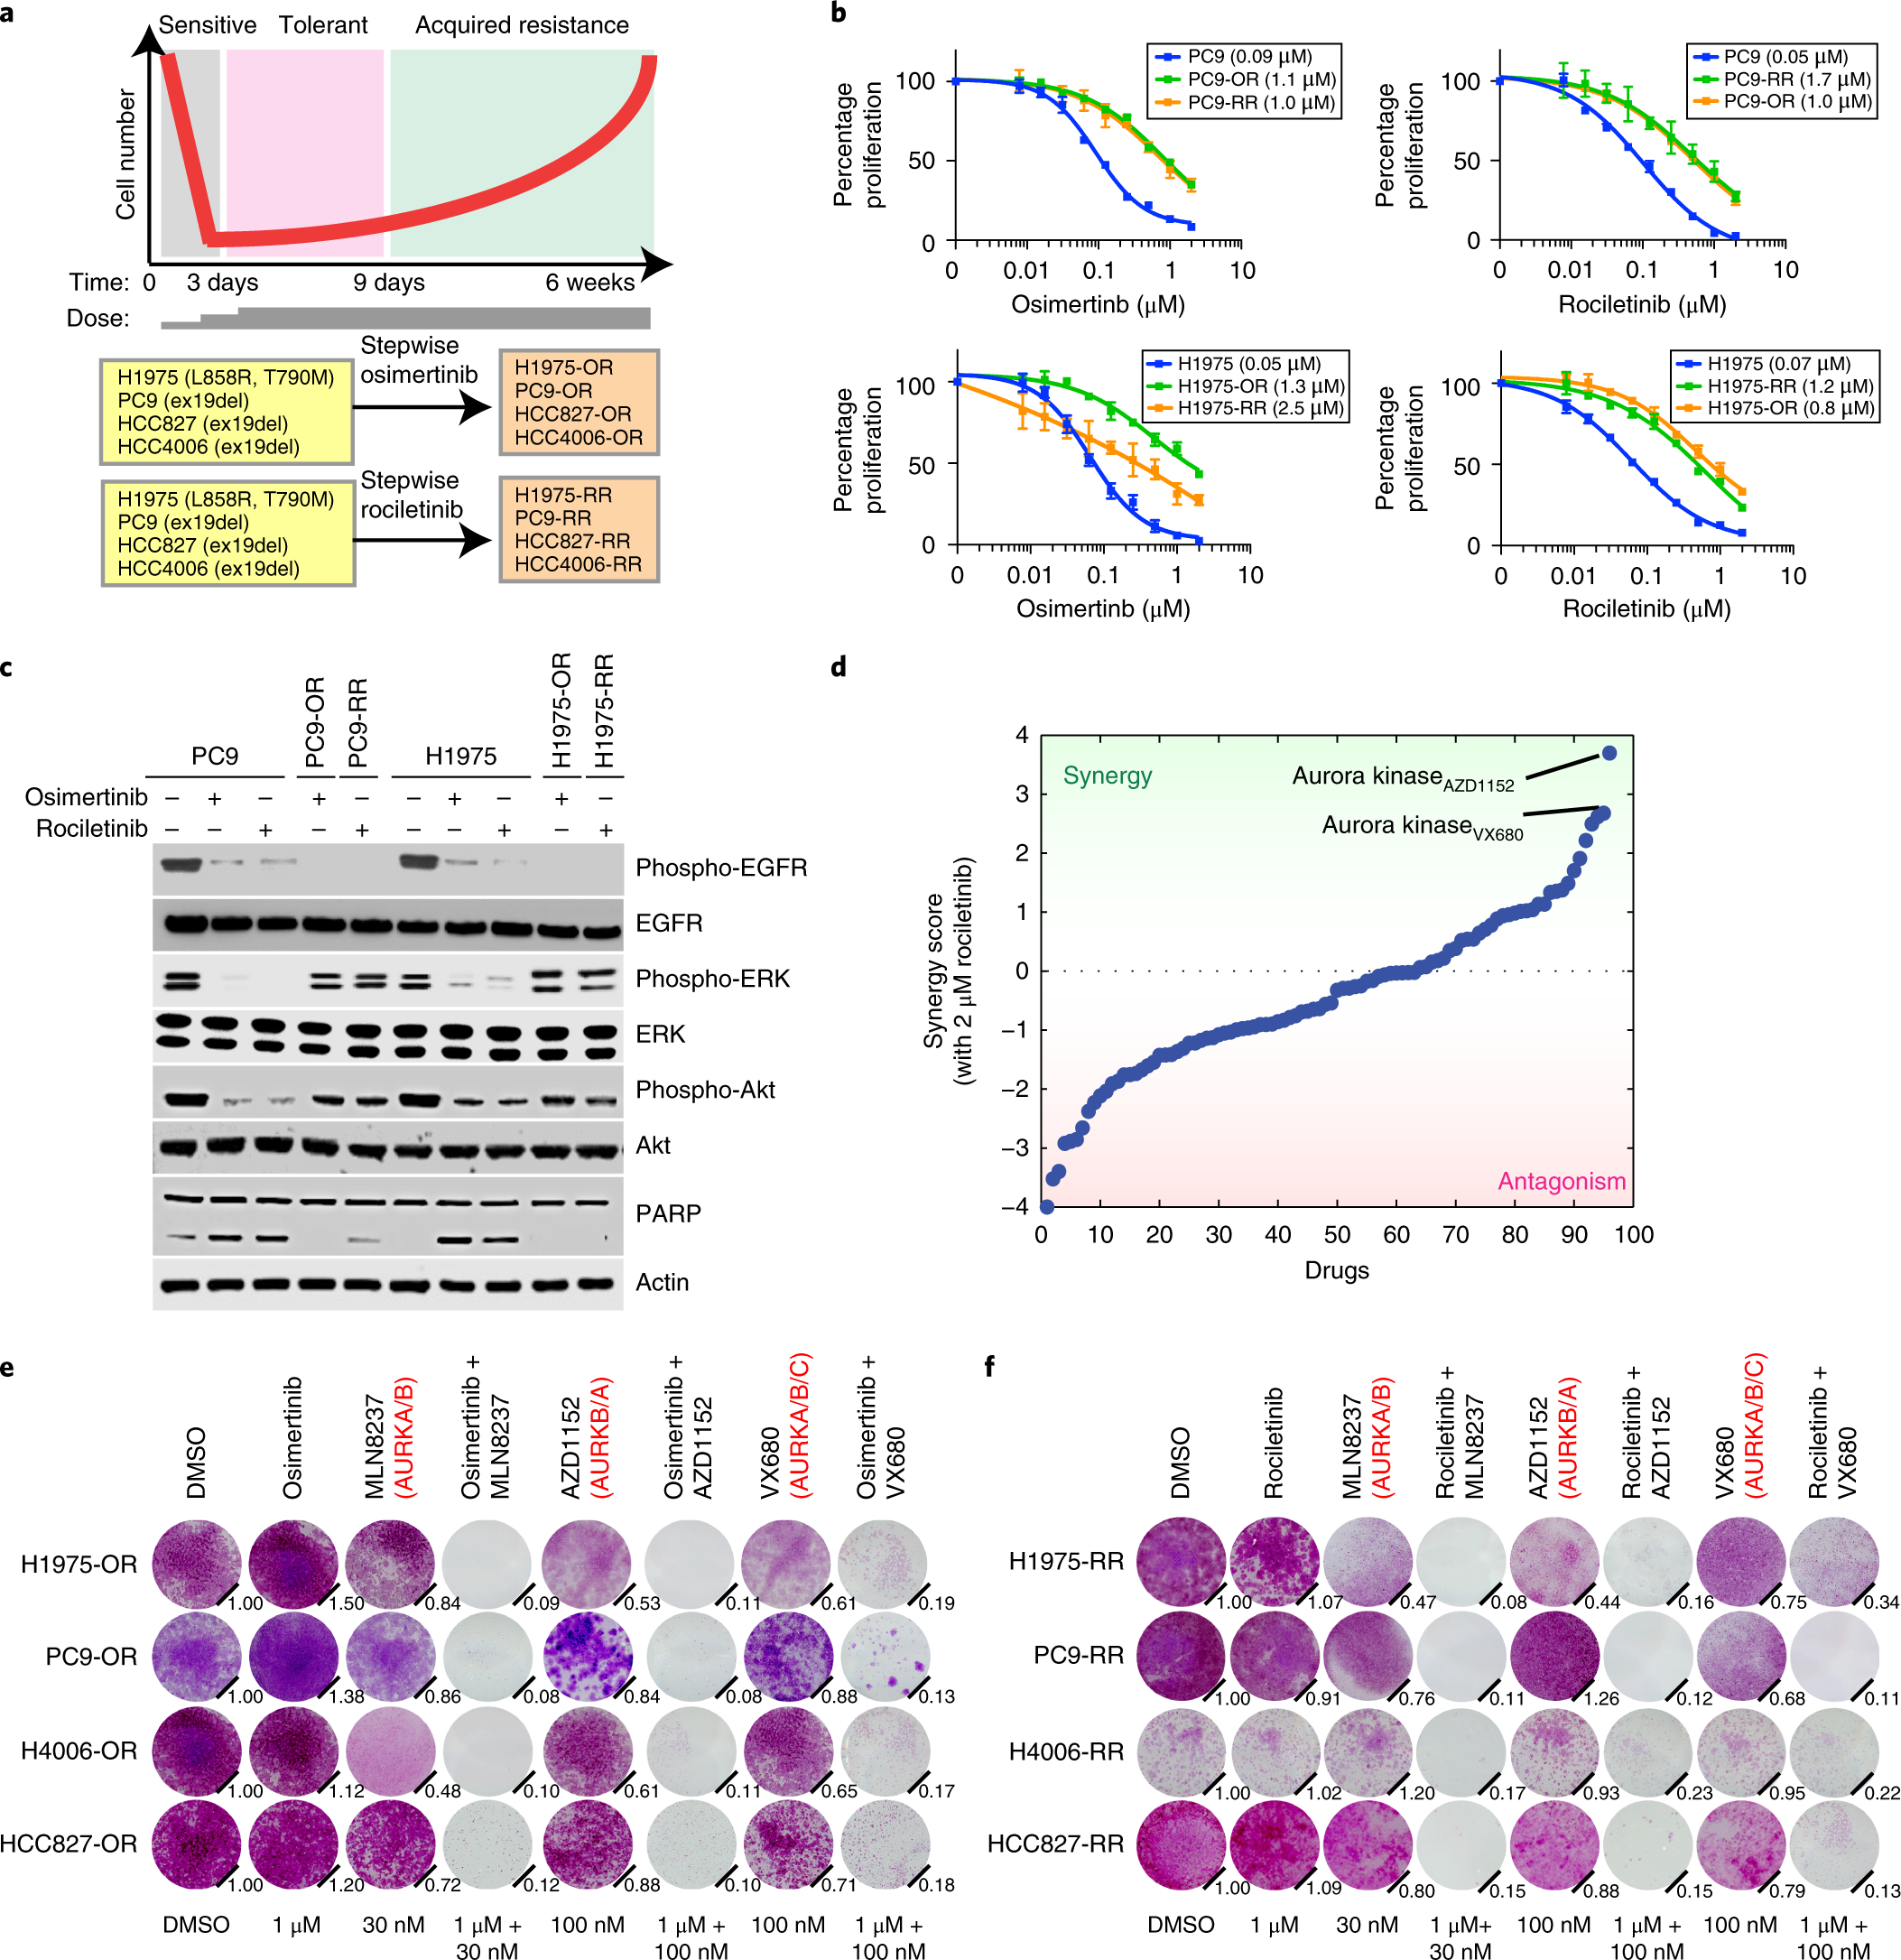 Aurora kinase A drives the evolution of resistance to third